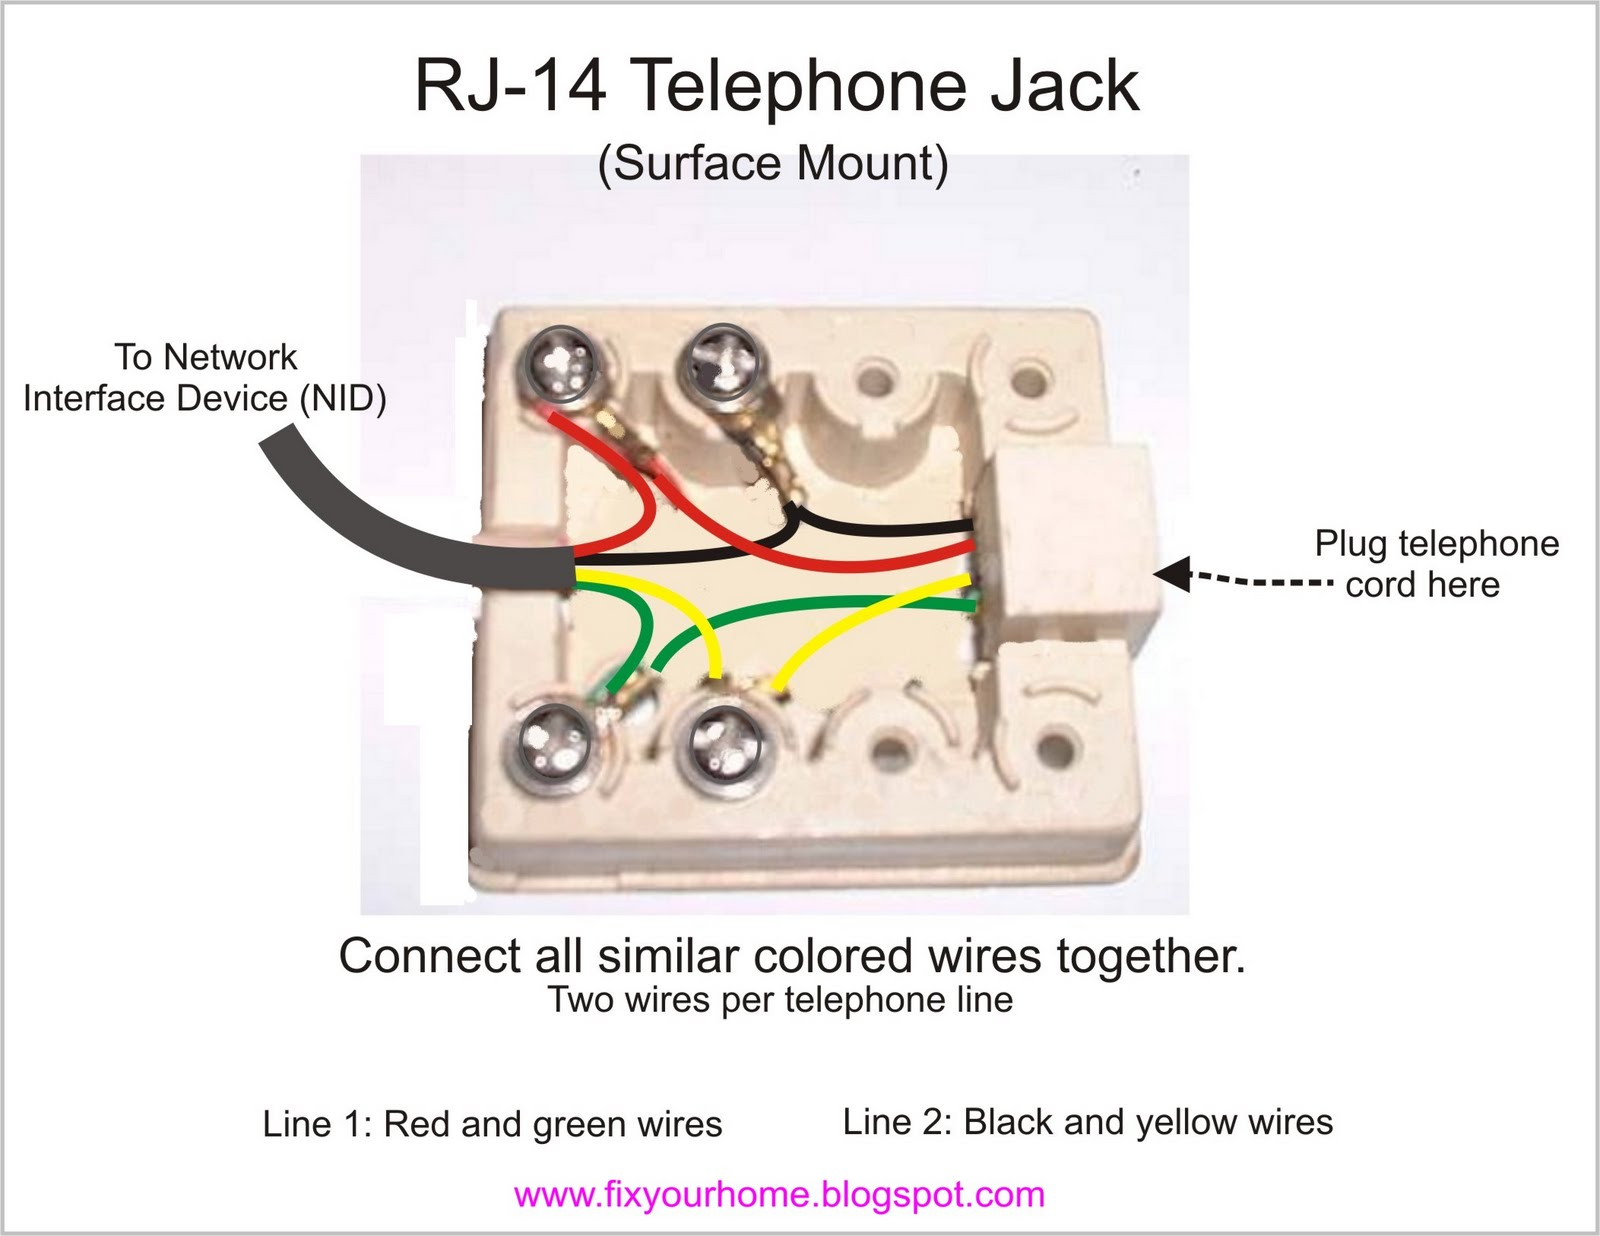 DIAGRAM] Dsl 2 Line Phone Jack Wiring Diagram FULL Version HD Quality Wiring  Diagram - FREELYFLY.K-DANSE.FRDatabase diagramming tool - K-danse.fr